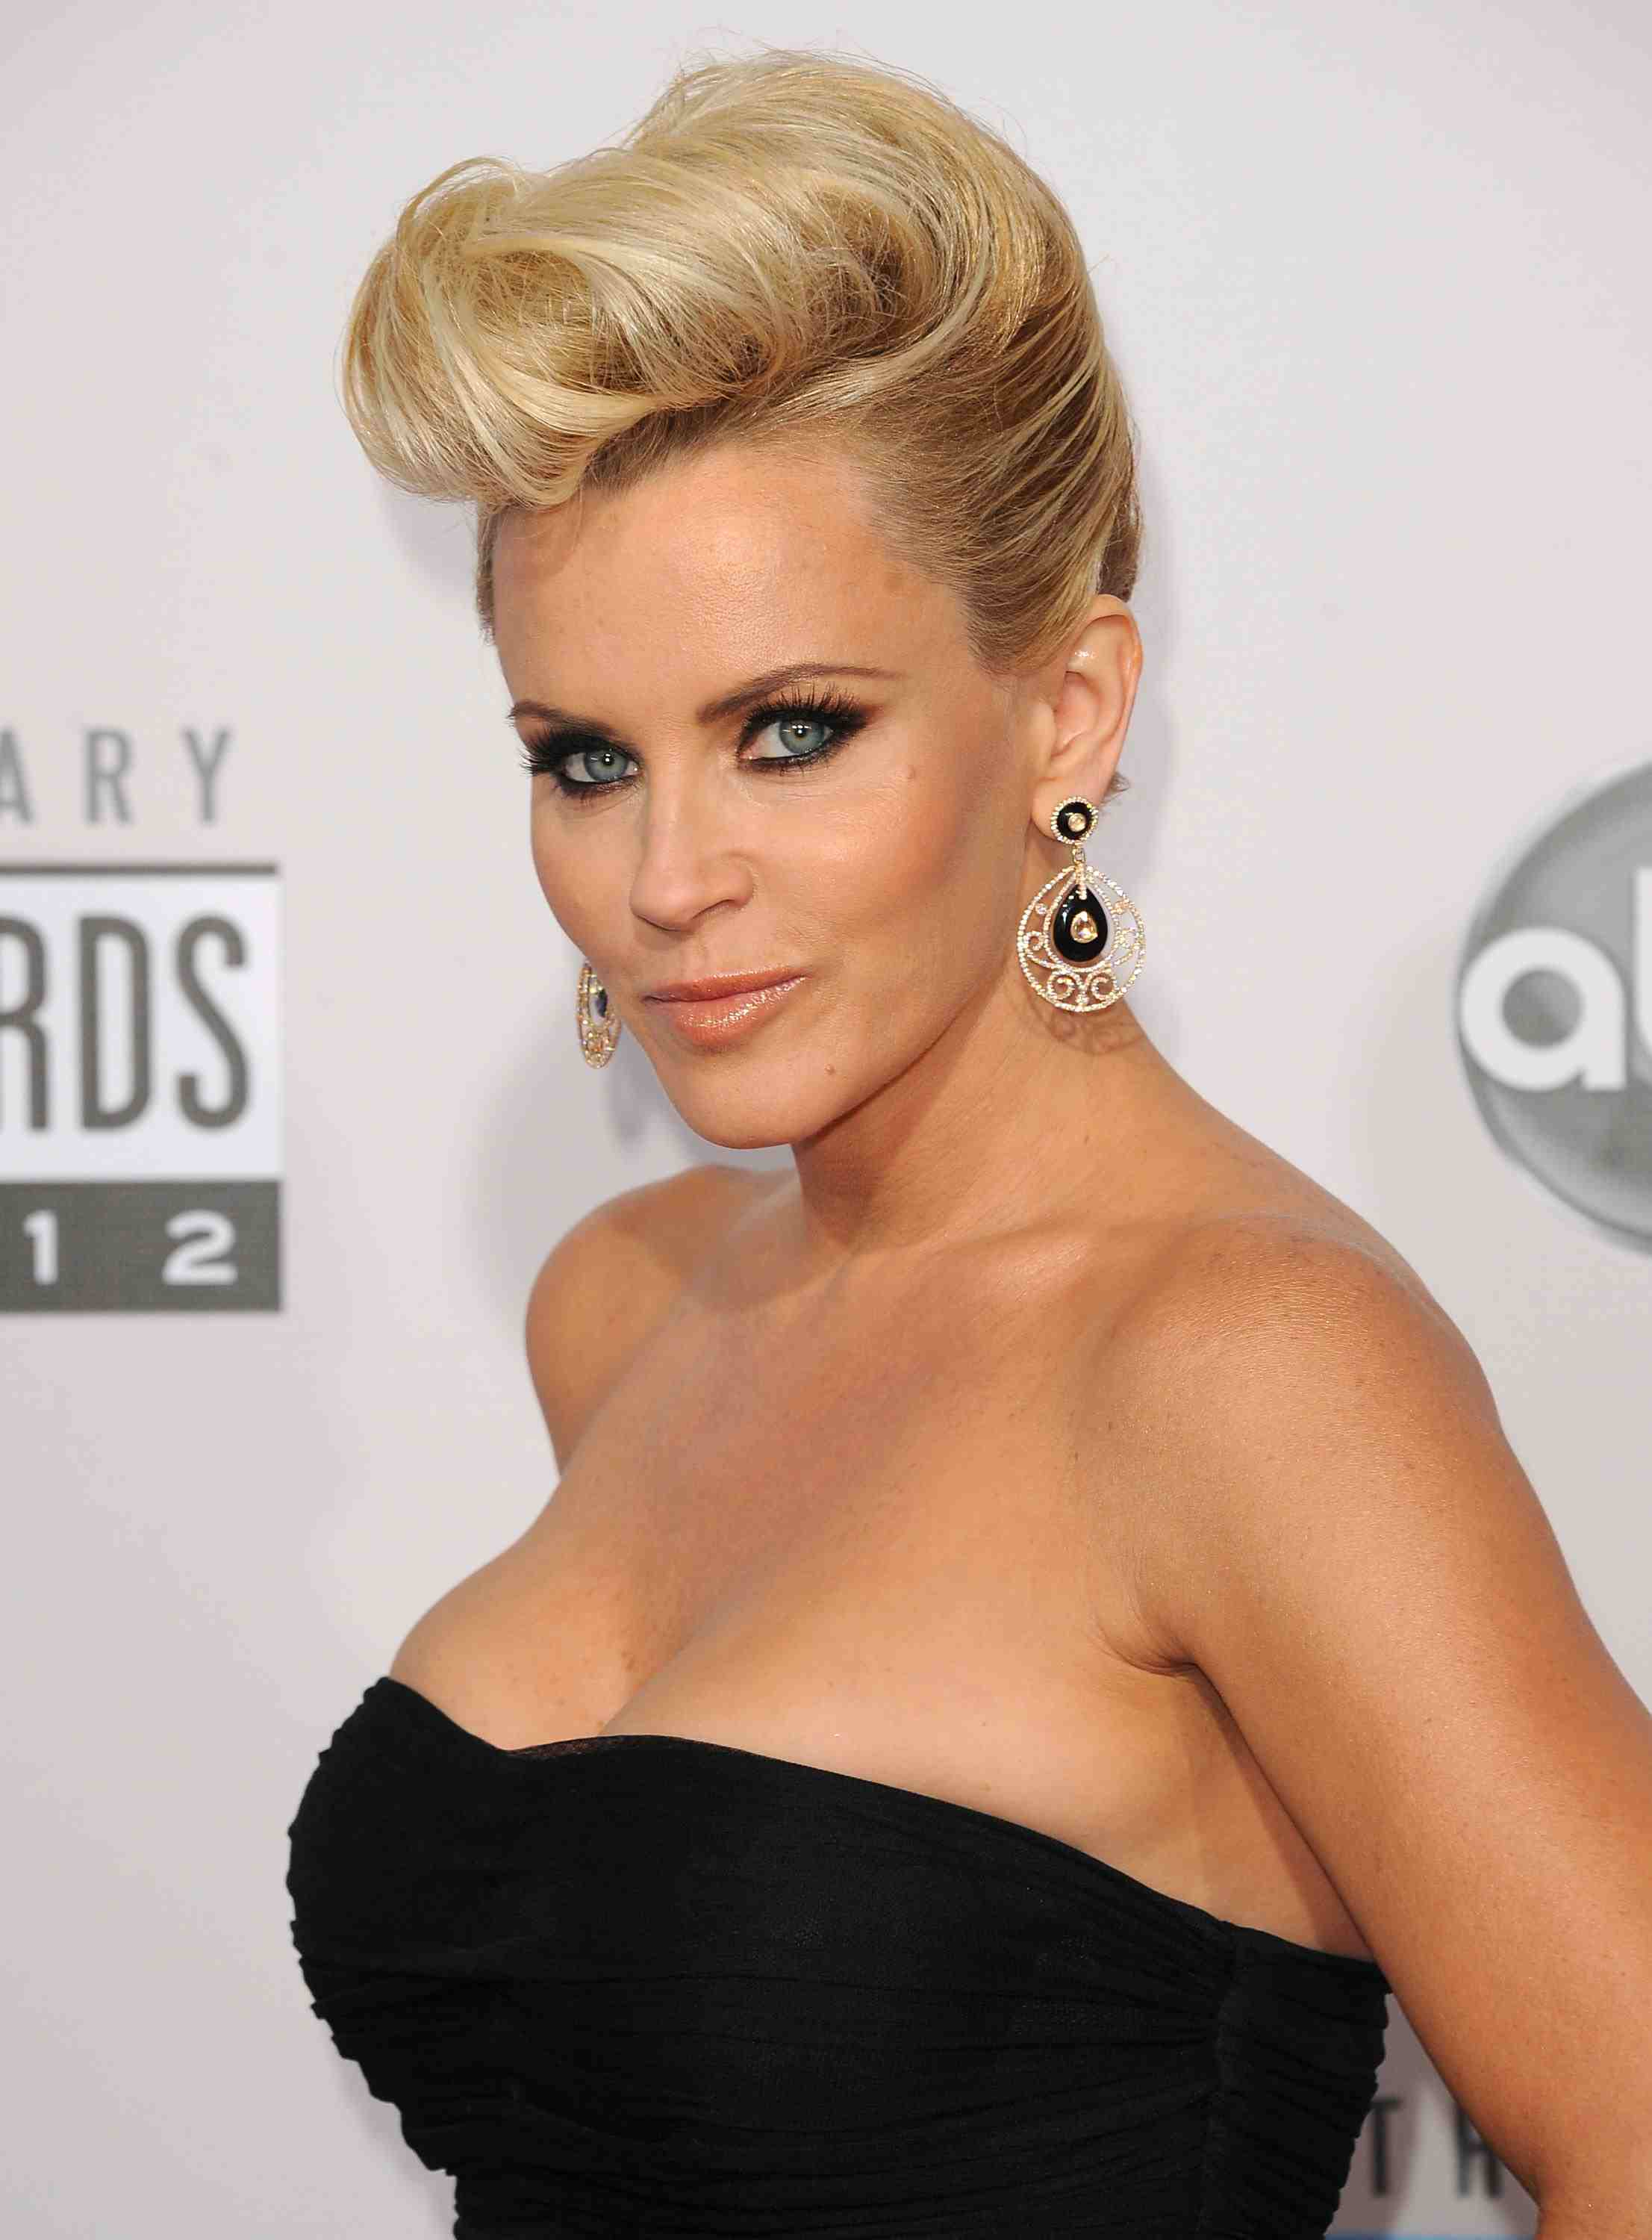 Pompadour Hairstyling Tips for the Modern Female